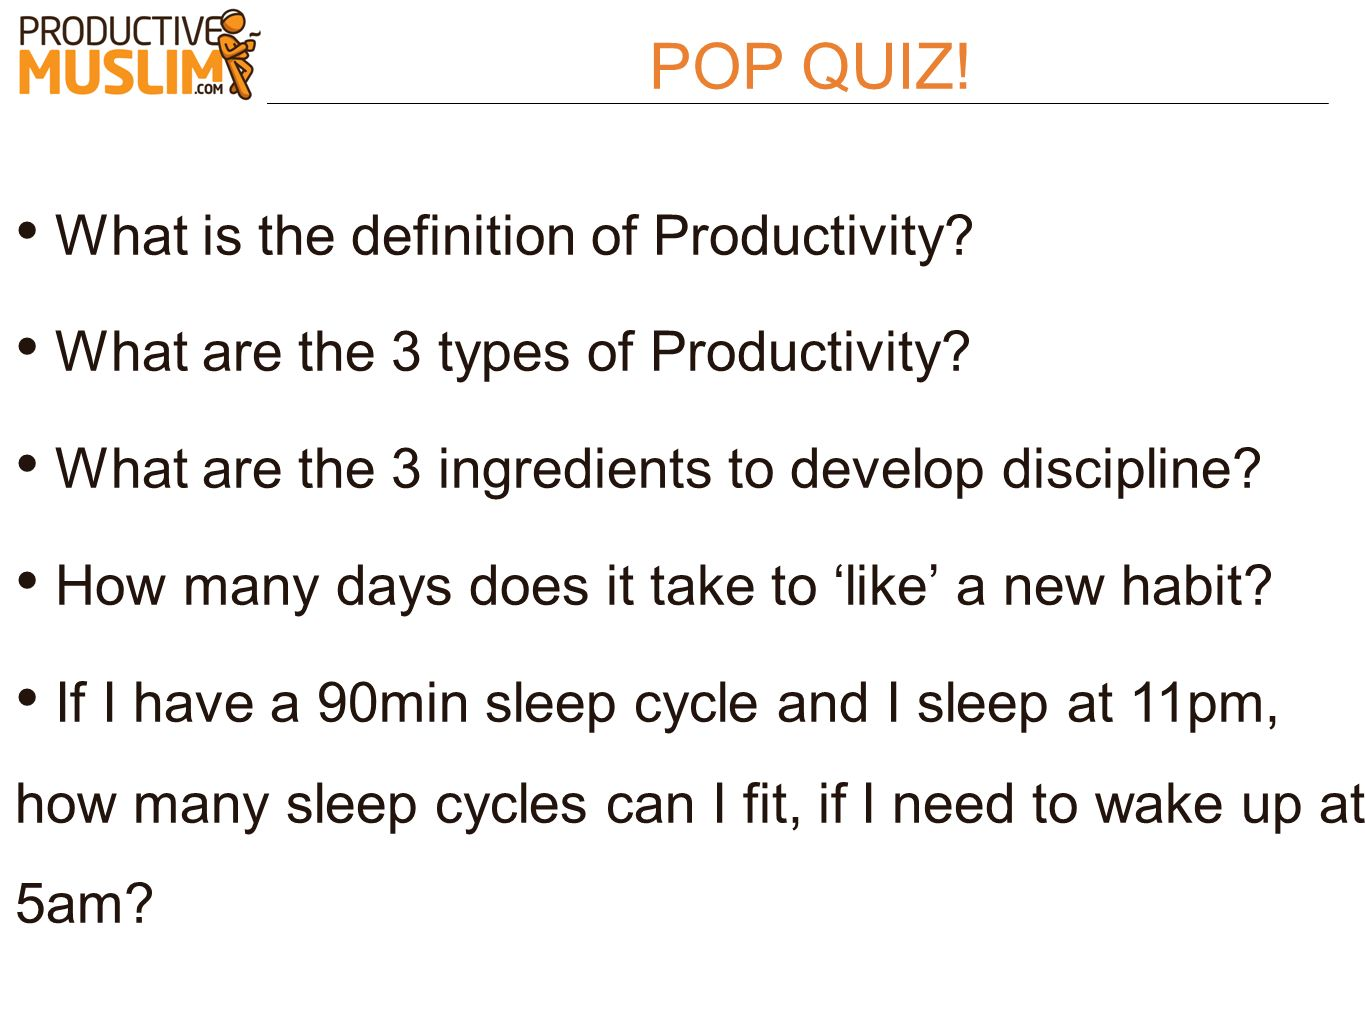 POP QUIZ! What is the definition of Productivity? What are the 3 types of Productivity? What are the 3 ingredients to develop discipline? How many day